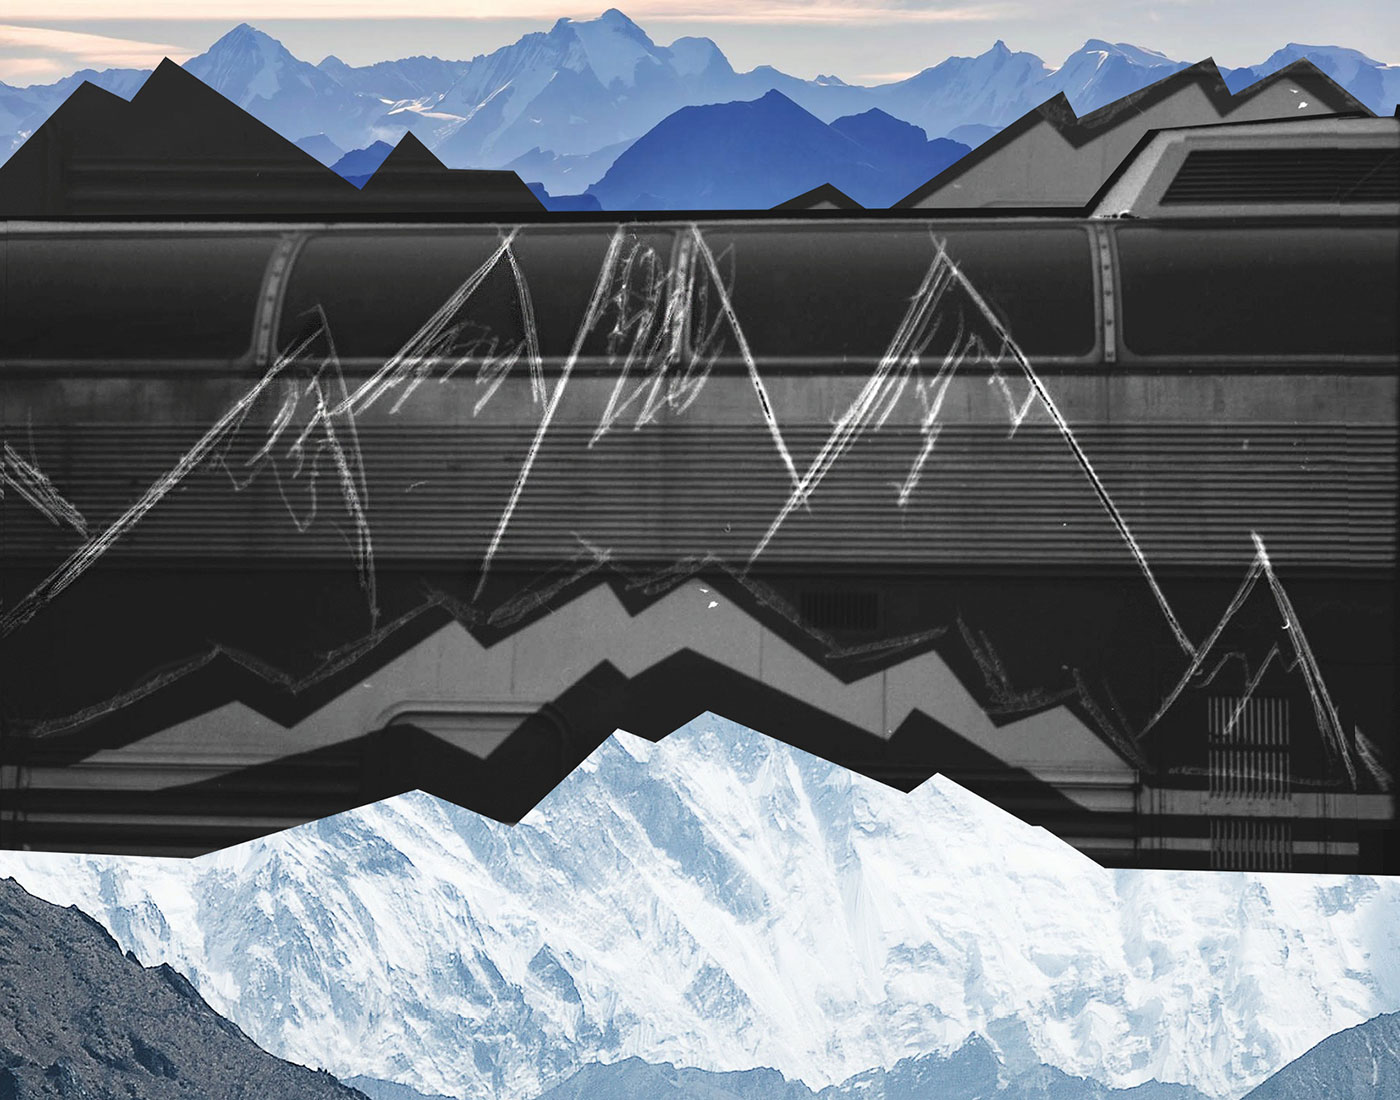 Kennedy N. Johnson - Mountain (from the Virtual Matter series)